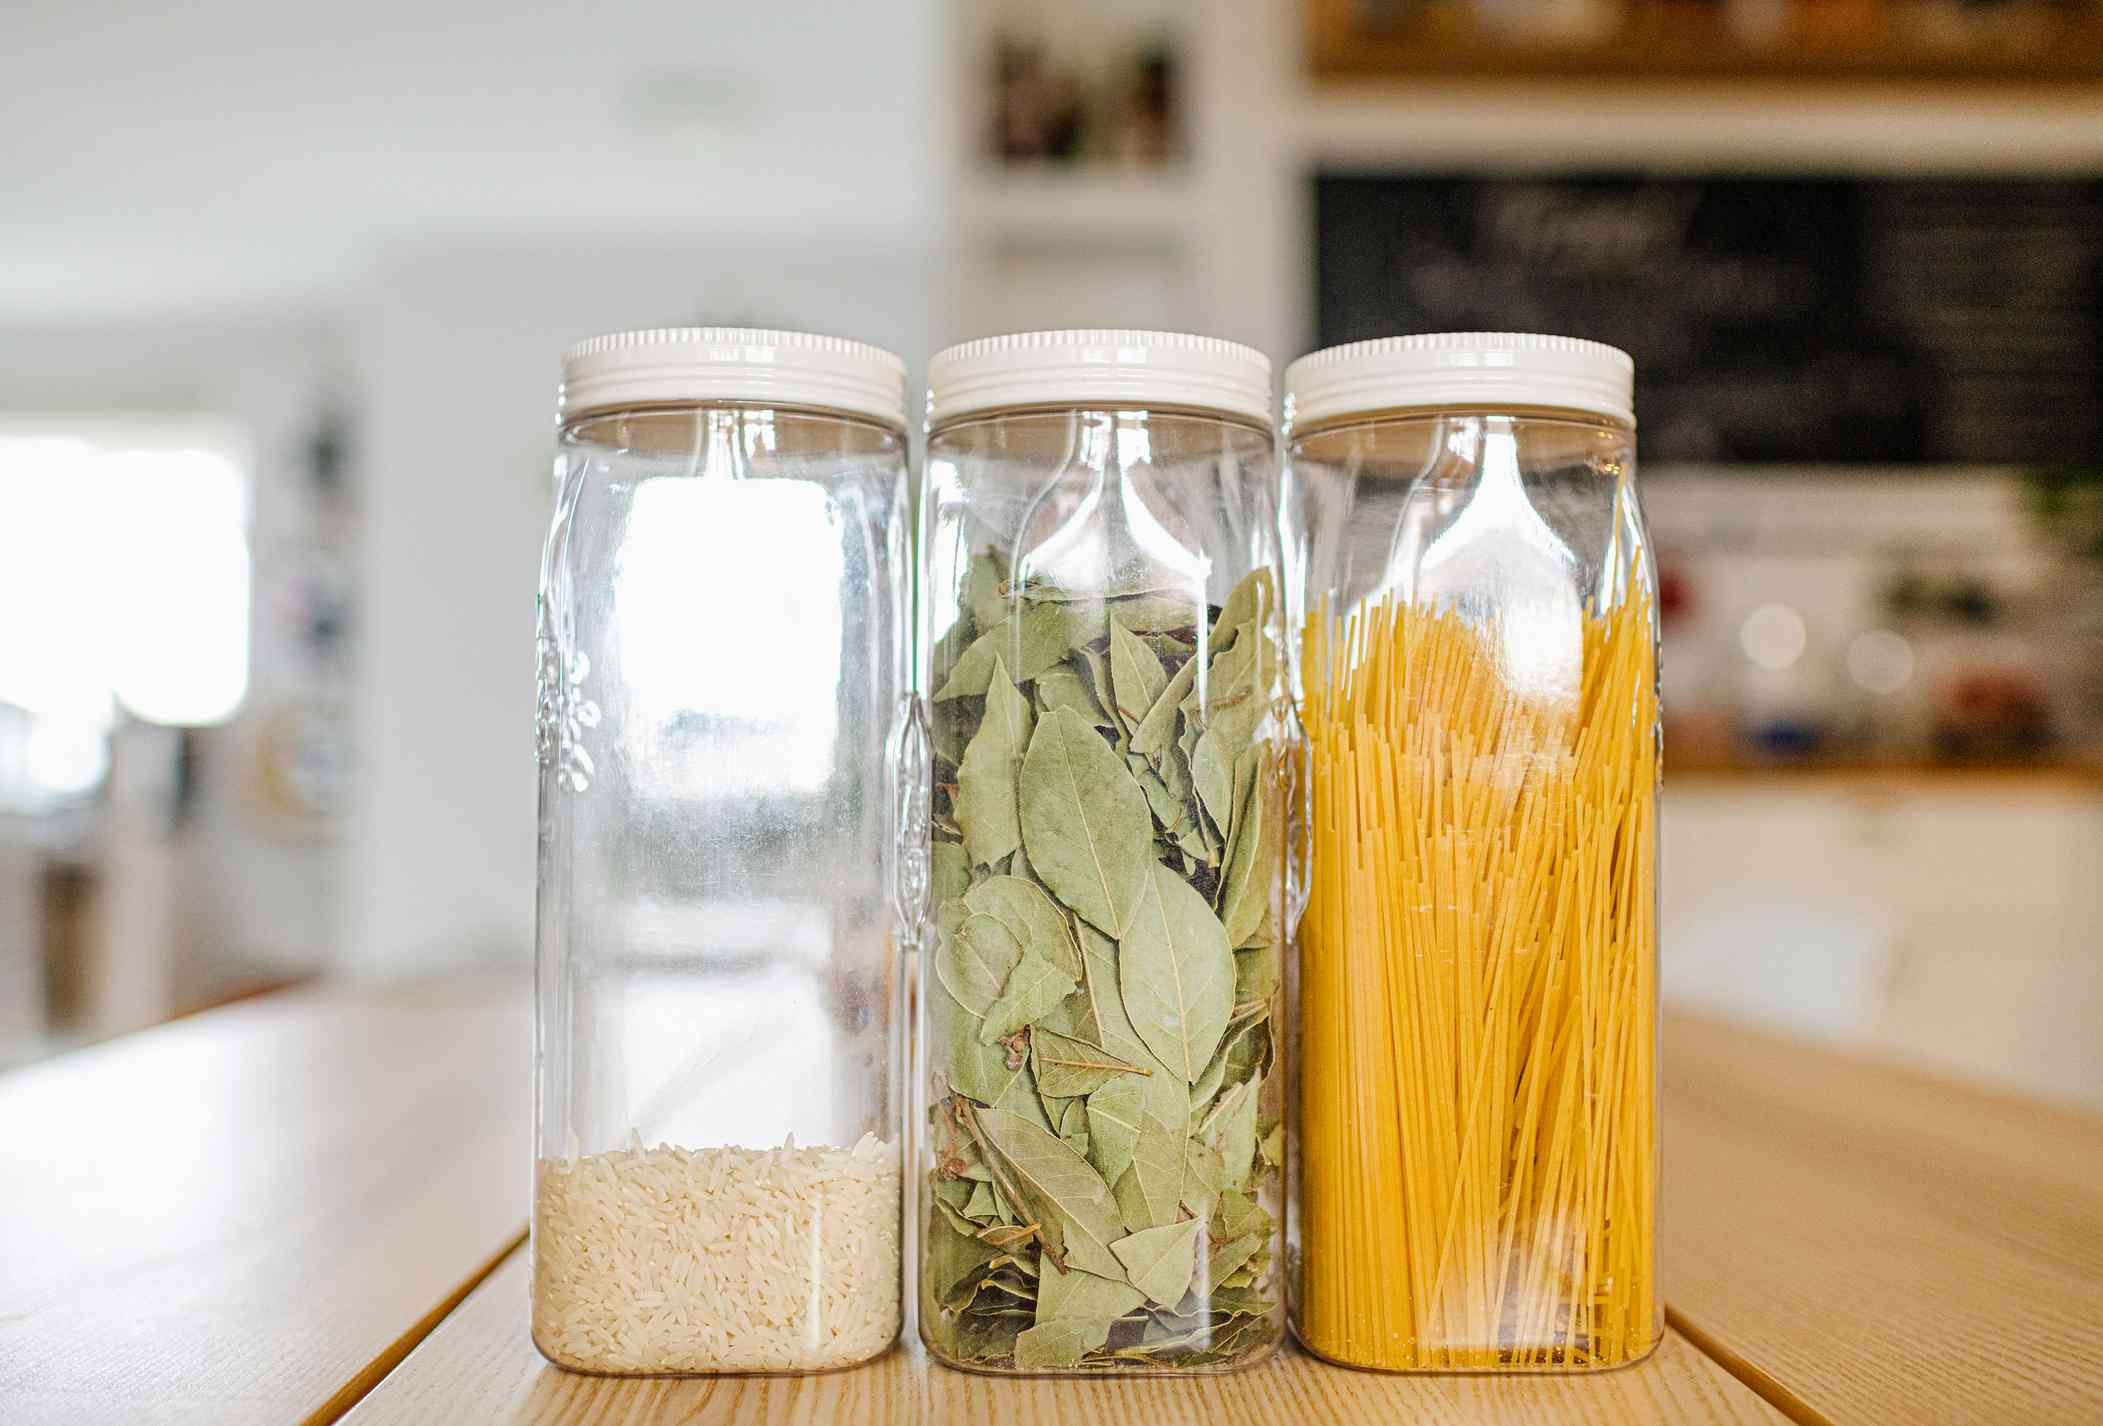 Kitchen storage containers on countertop